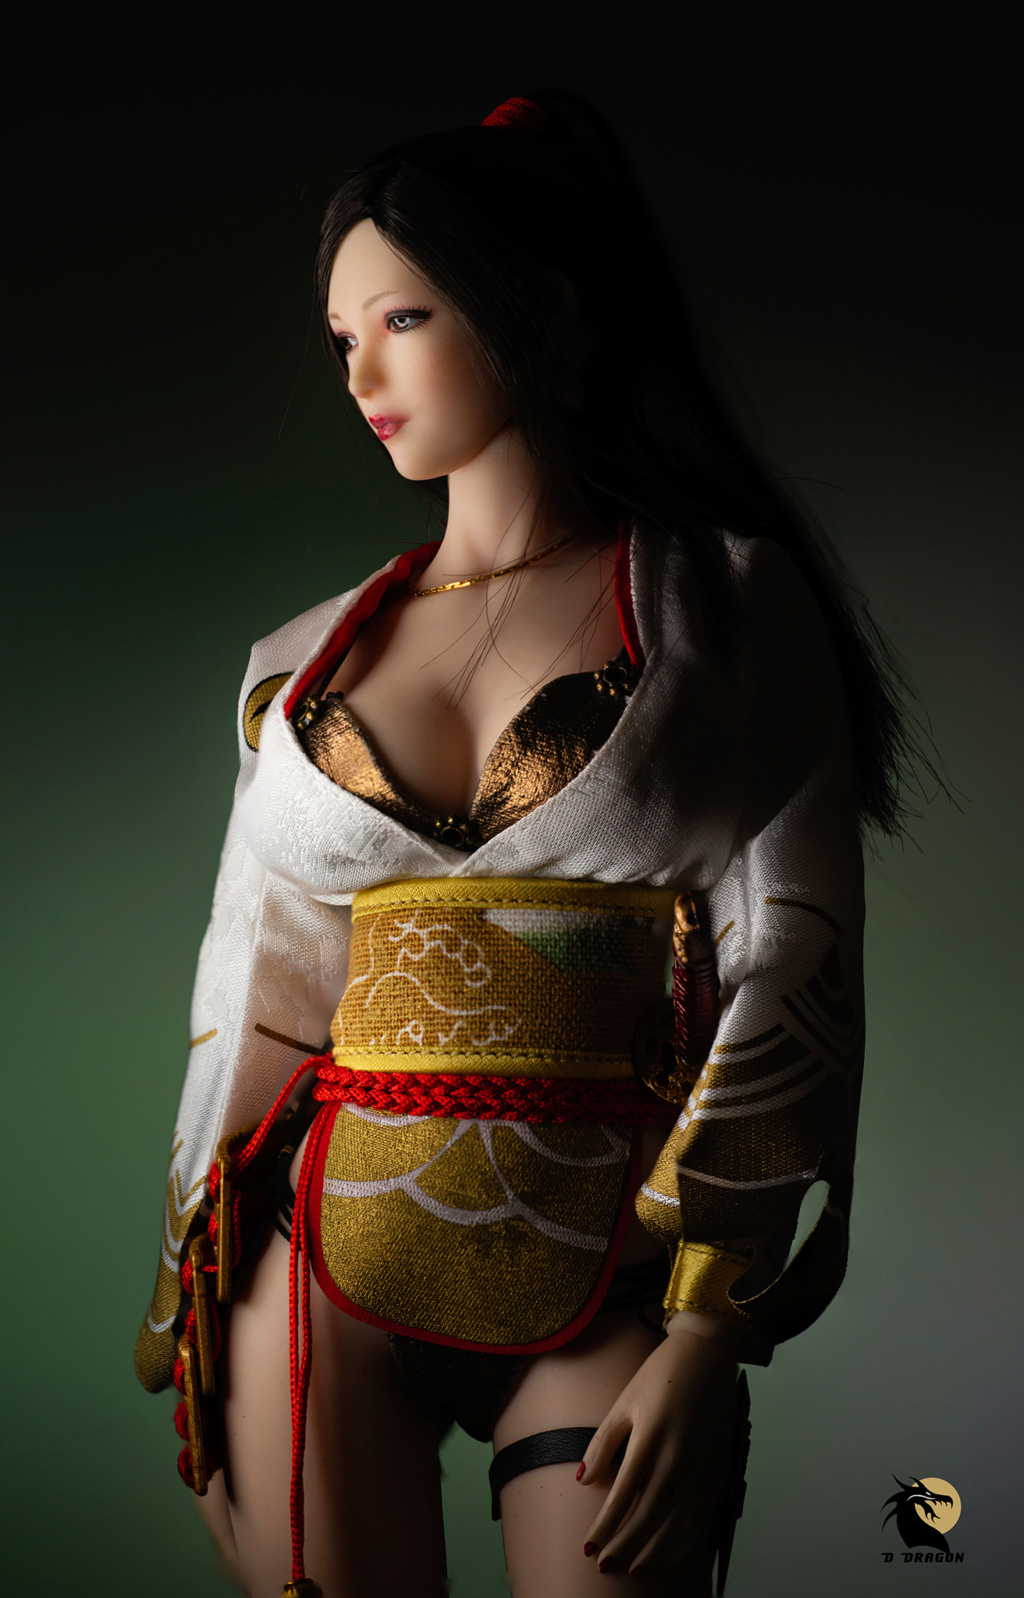 VeryCool - NEW PRODUCT: Verycool VCF2039 1/6 Scale Japanese Heroine - Nōhime Nohime21